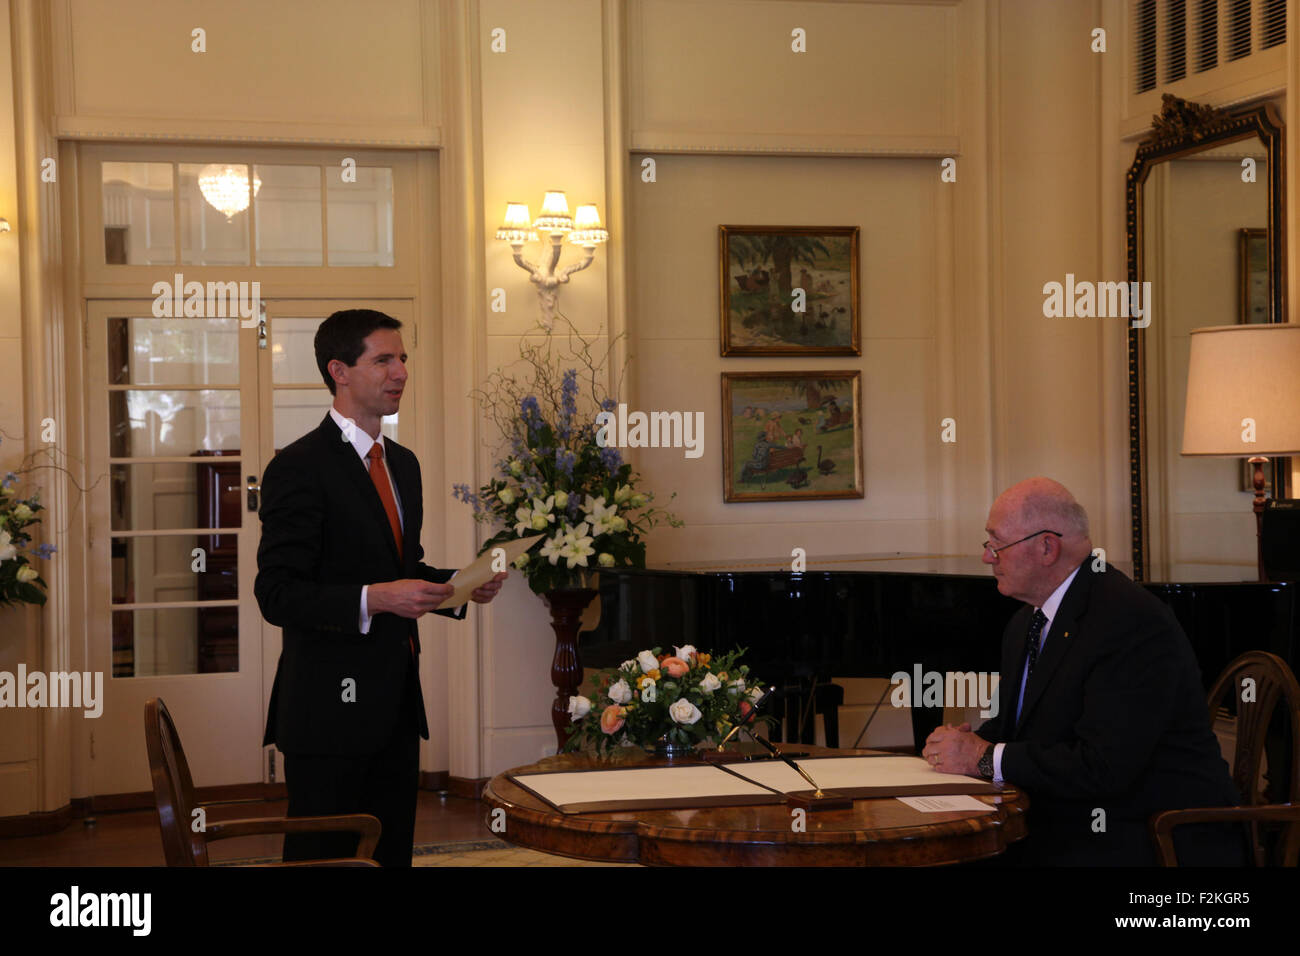 Canberra, Australia. 21st Sep, 2015. Simon Birmingham (L) is sworn in as Minister for Education and Training by - Stock Image